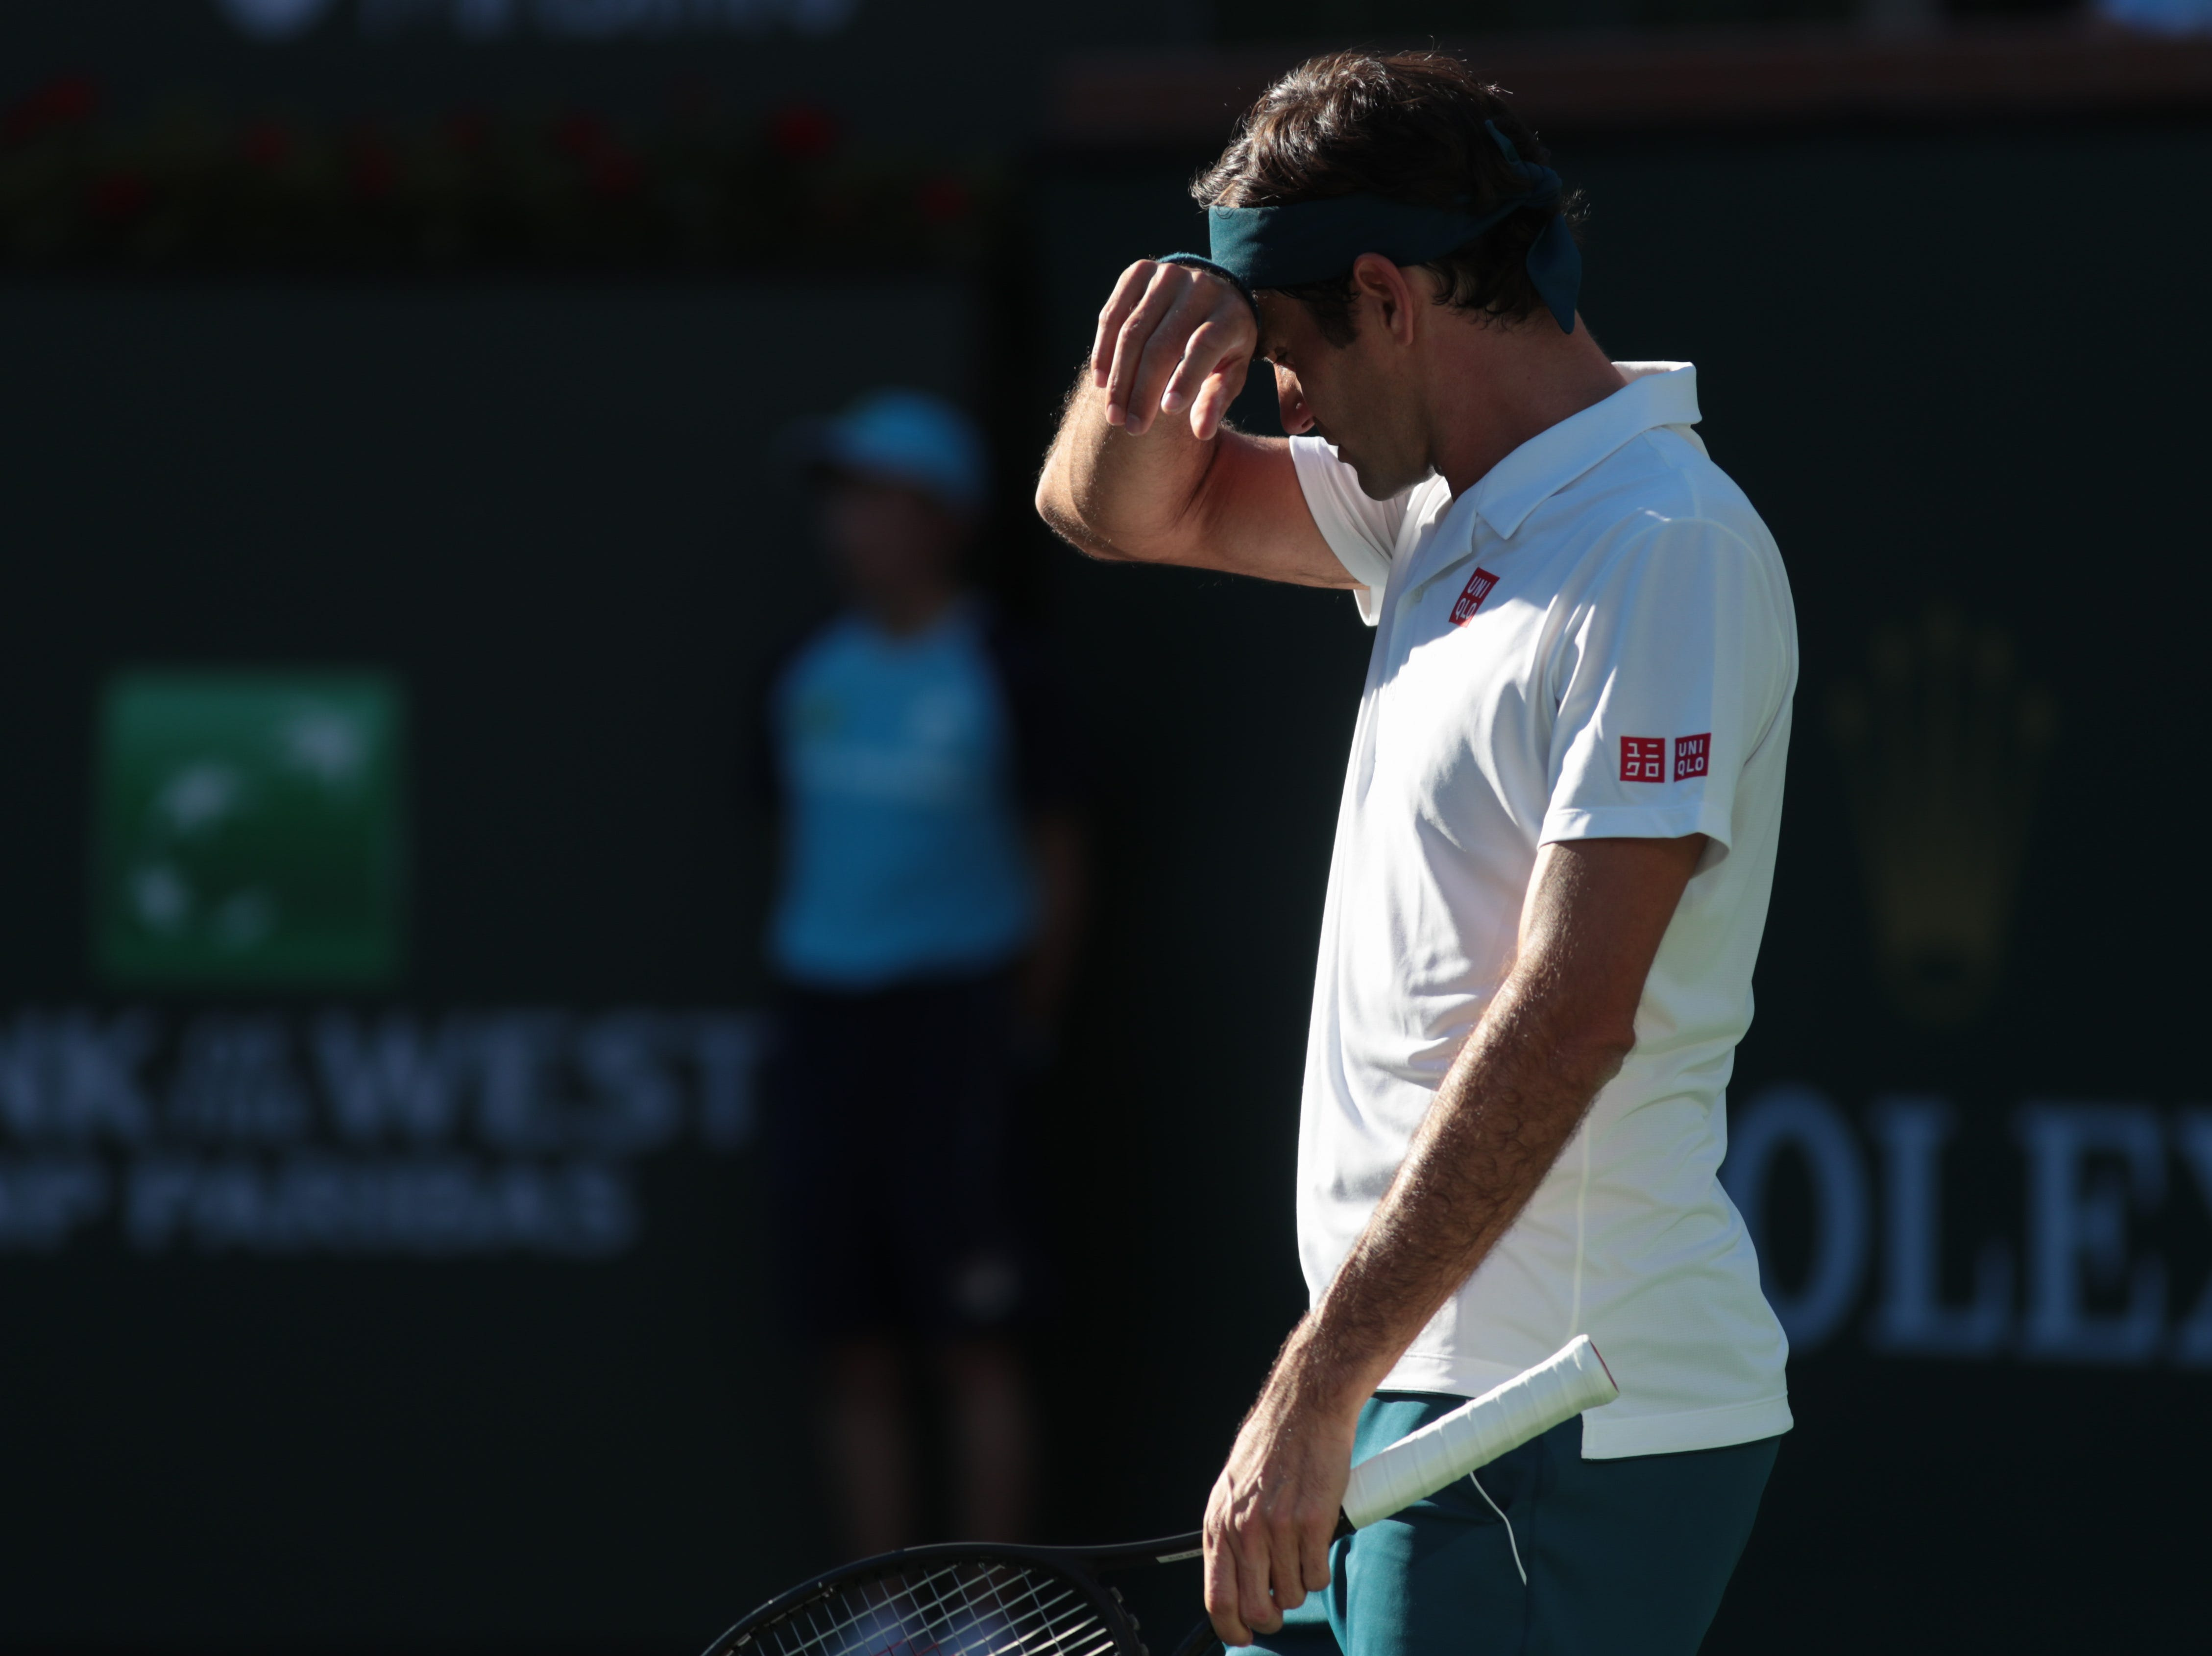 Roger Federer wipes sweat from his brow in the finals of the BNP Paribas Open in Indian Wells, Calif., March 17, 2019.